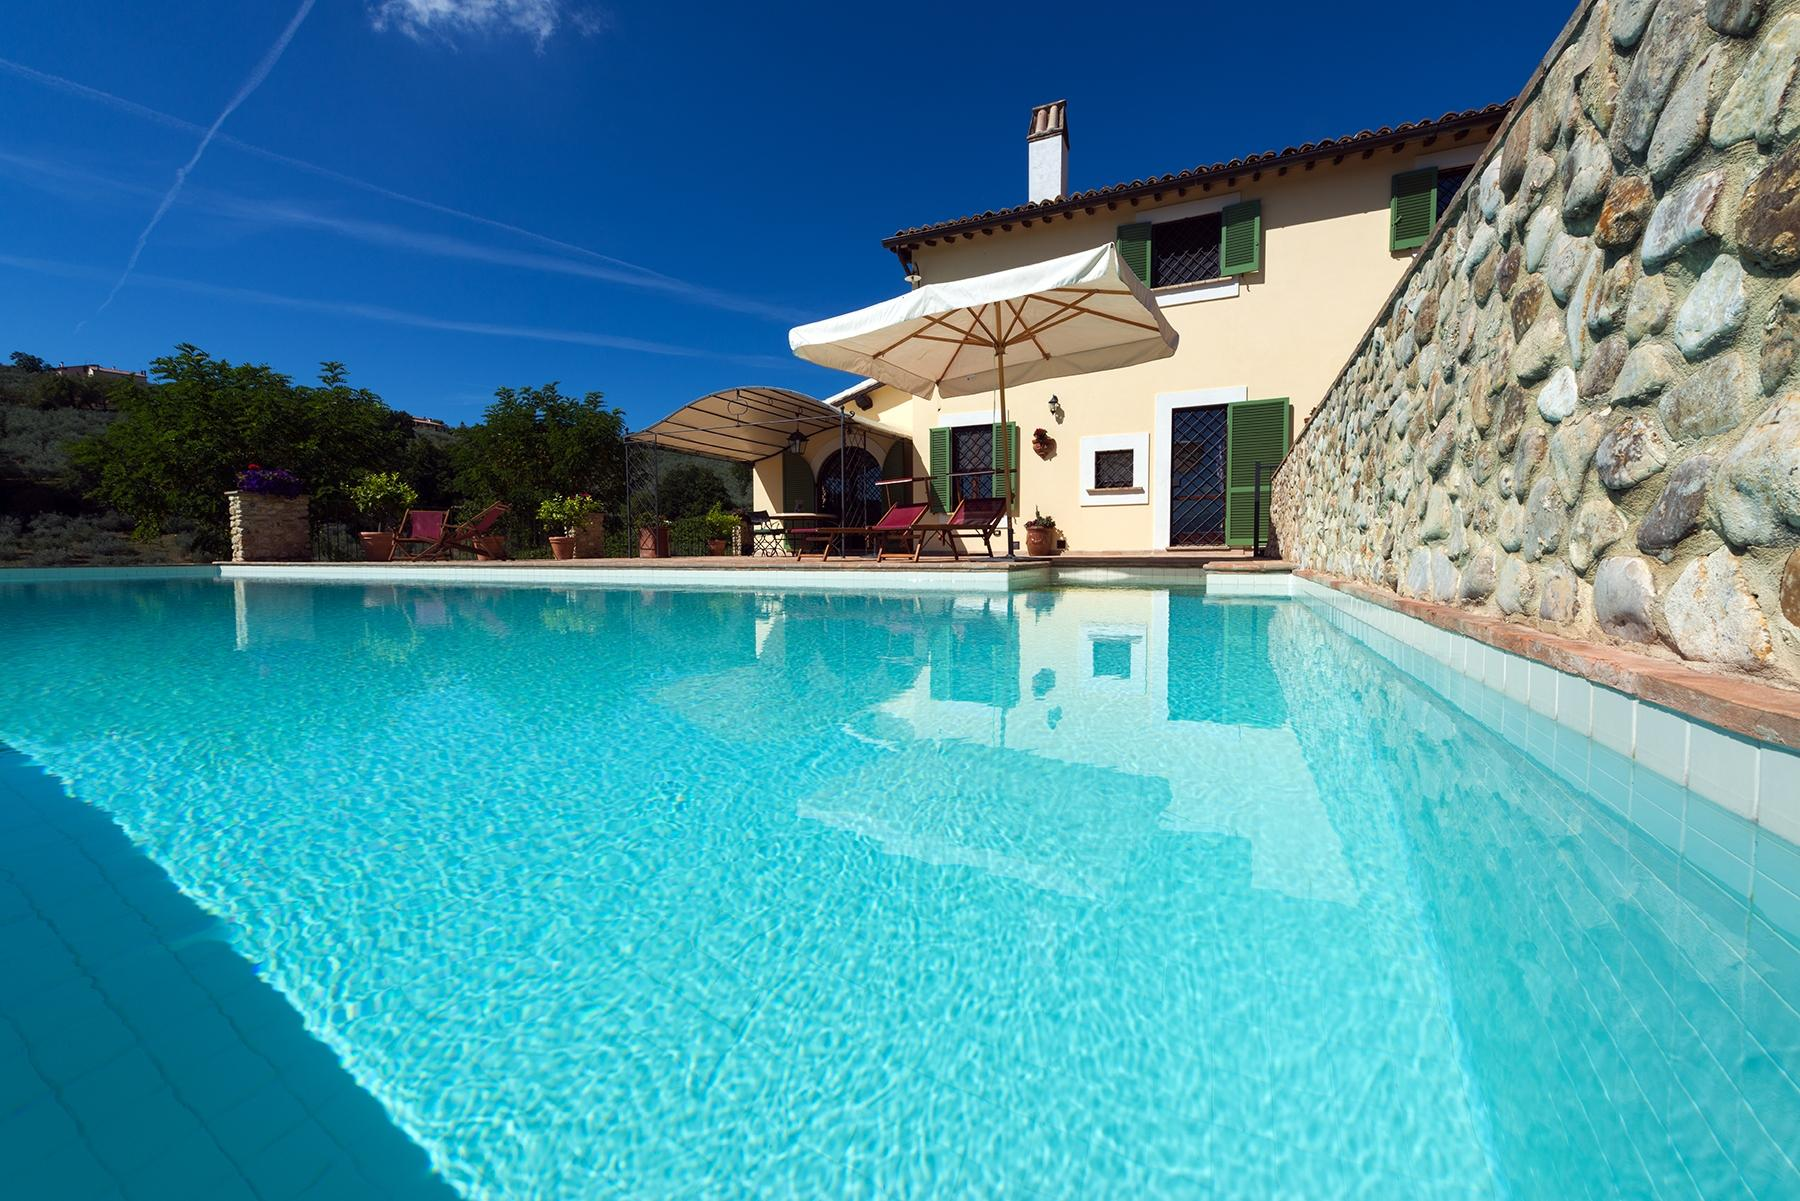 Enchanting property in the Umbrian hills - 2